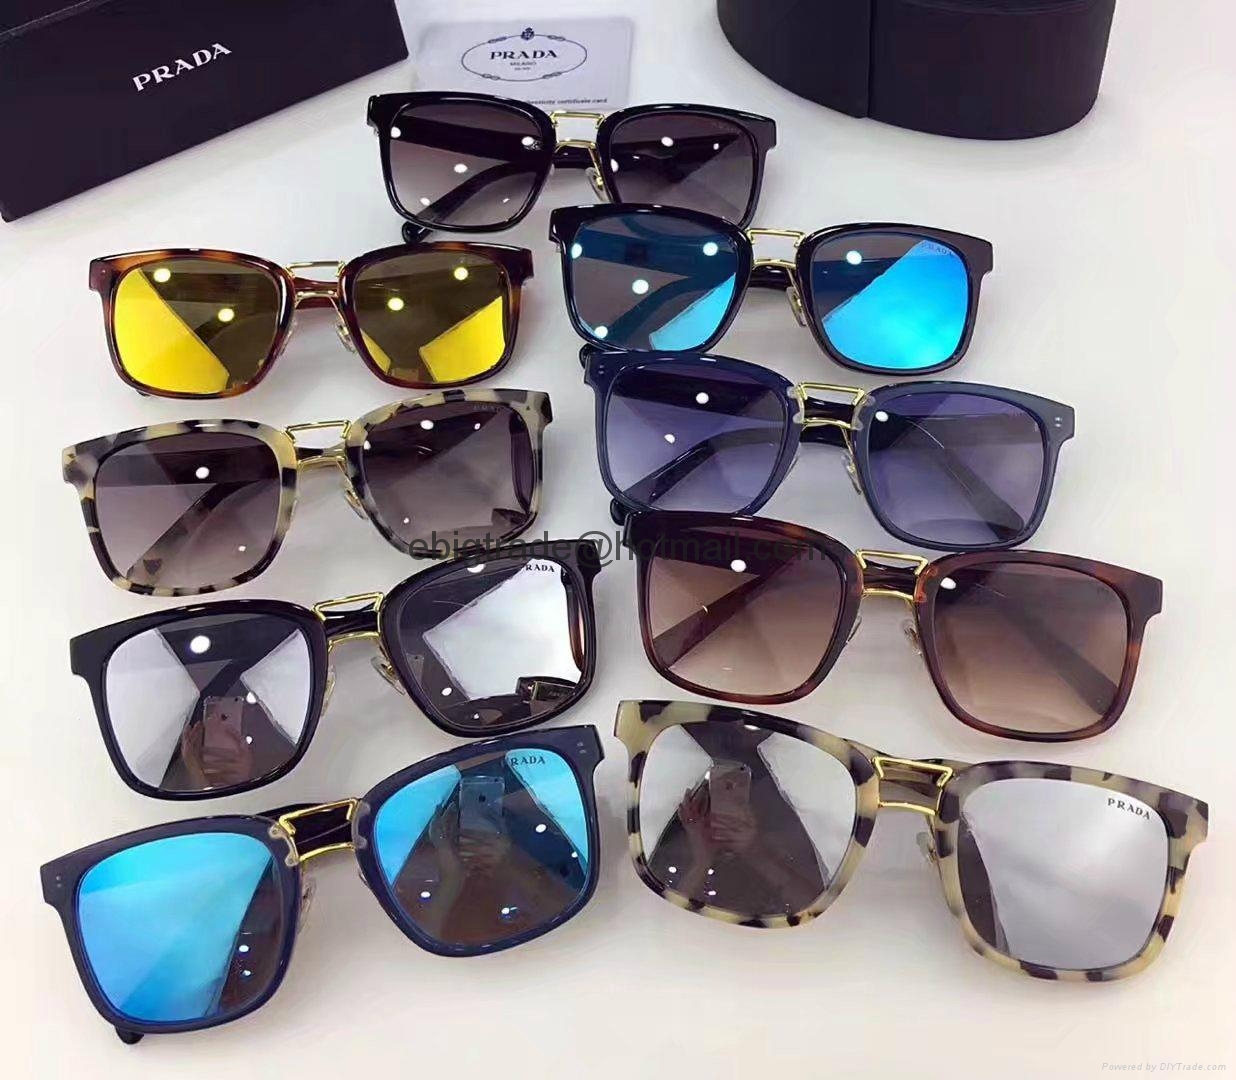 01f5c3b7ccc8f Fake Prada Sunglasses For Sale